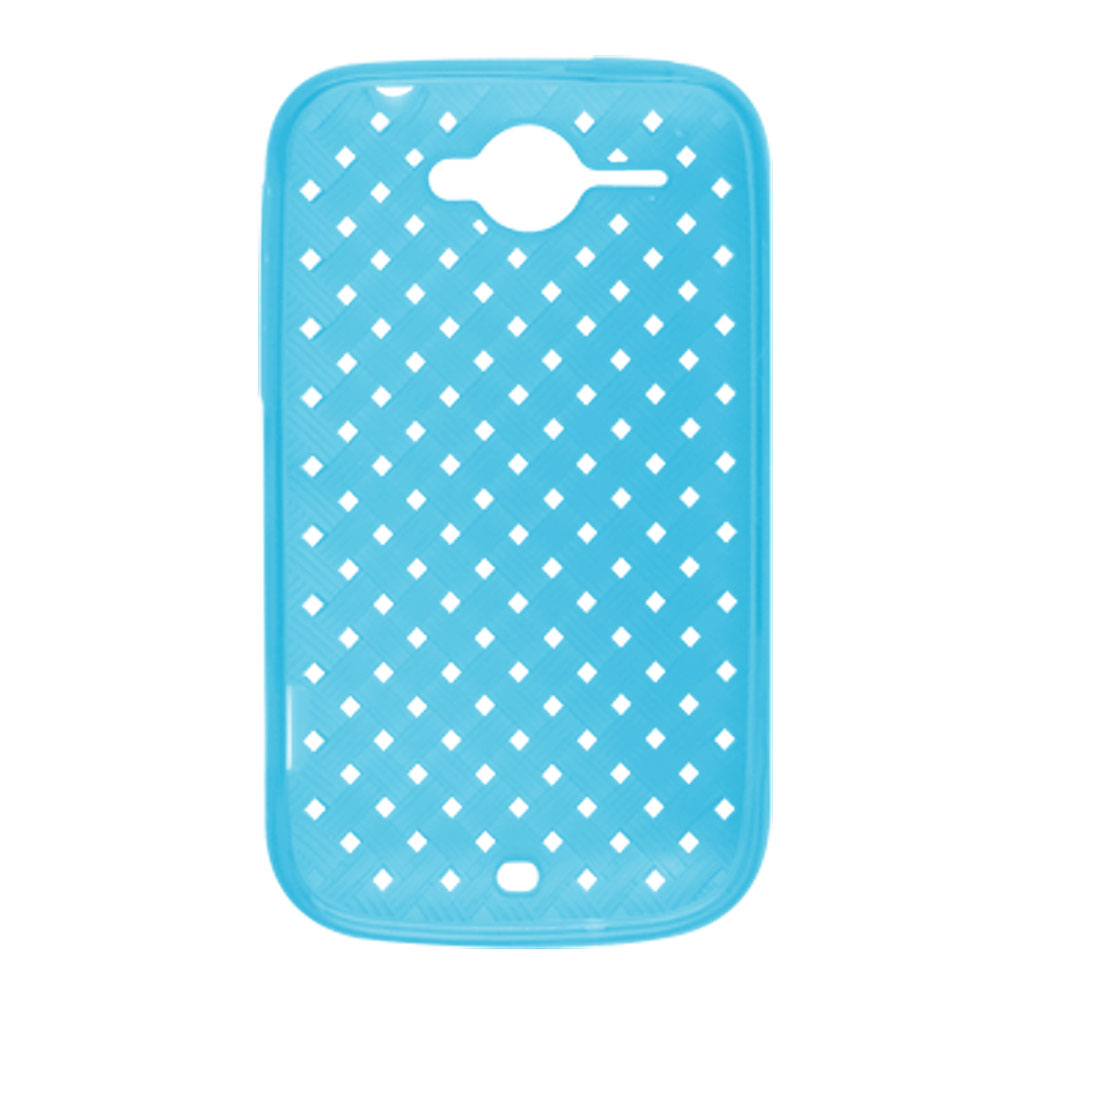 Square Holes Woven Pattern Rough Cover Blue for HTC Wildfire G8